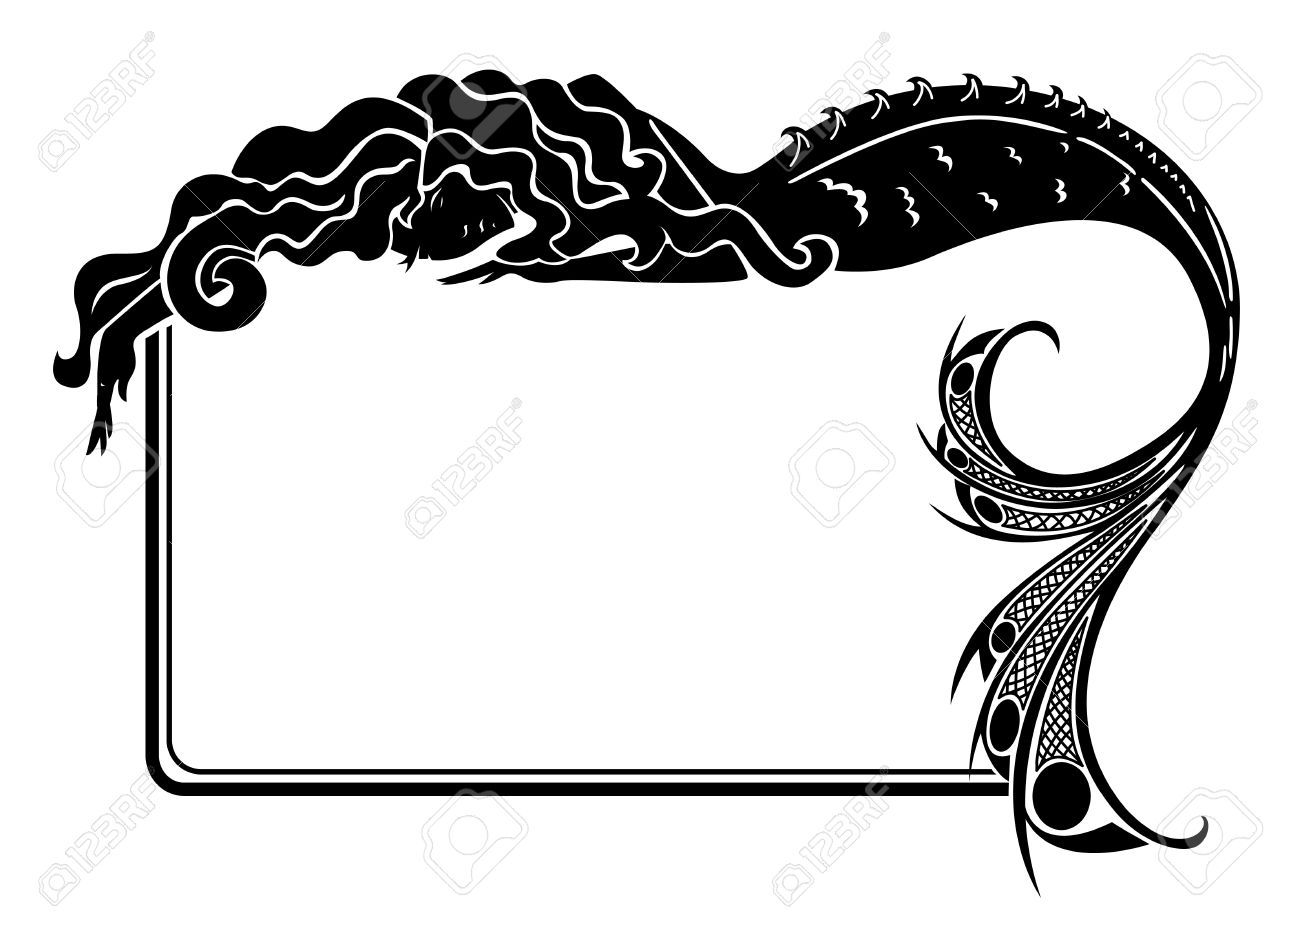 1300x928 Art Nouveau Mermaid Silhouette Frame Royalty Free Cliparts